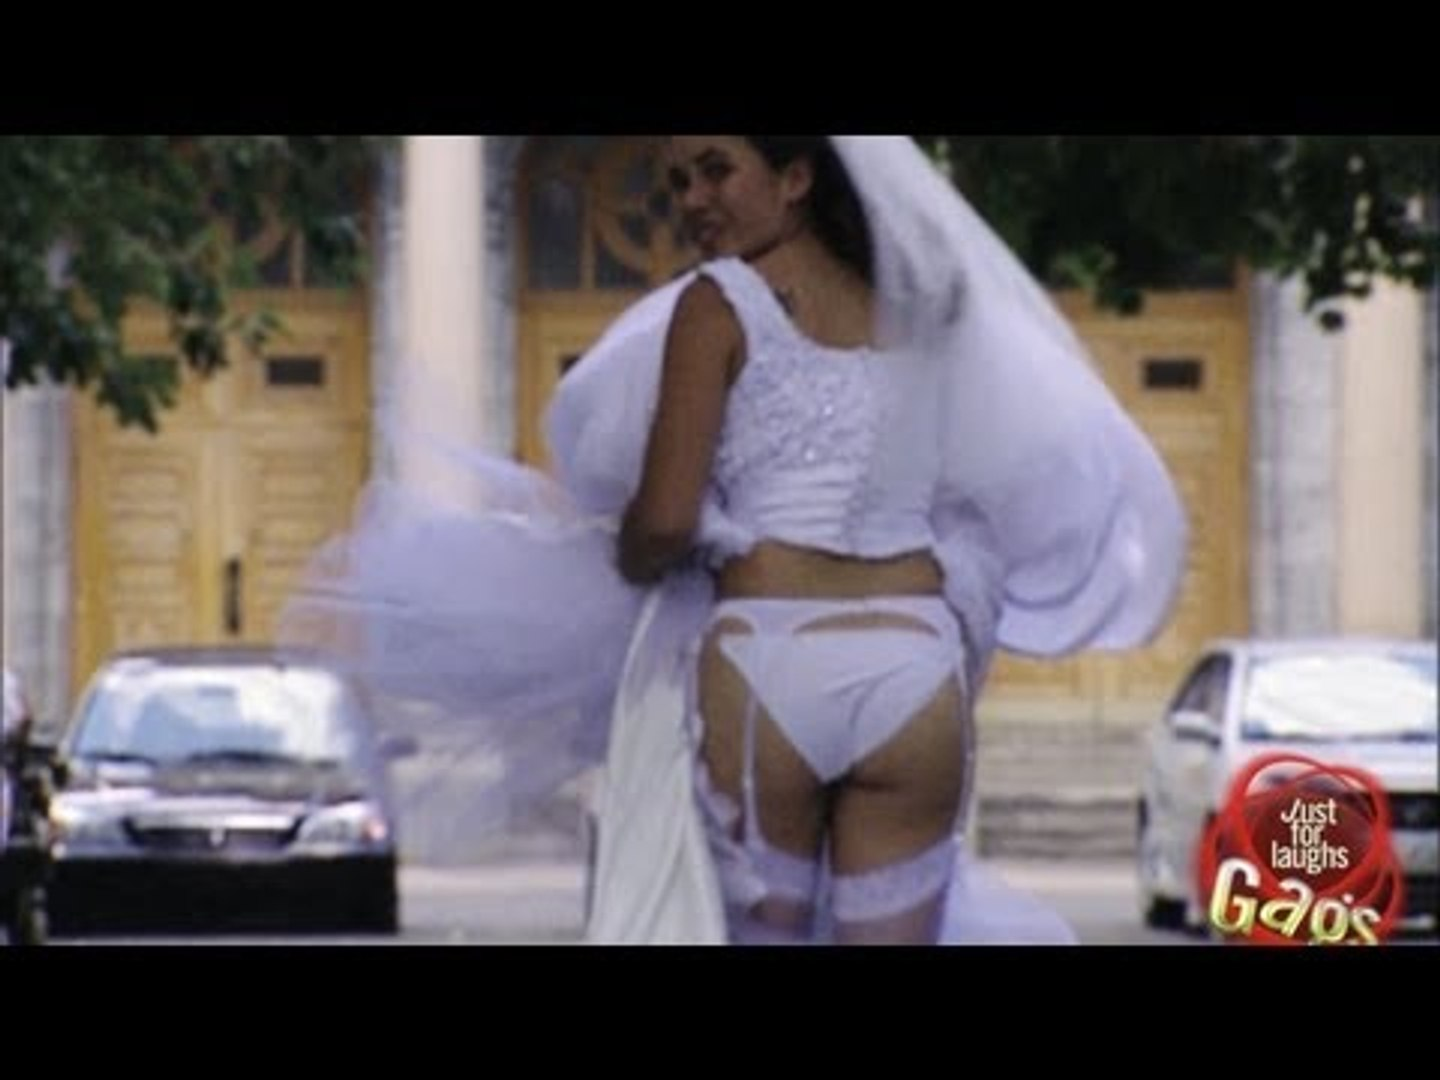 Best Wedding Pranks - Best Of Just For Laughs Gags